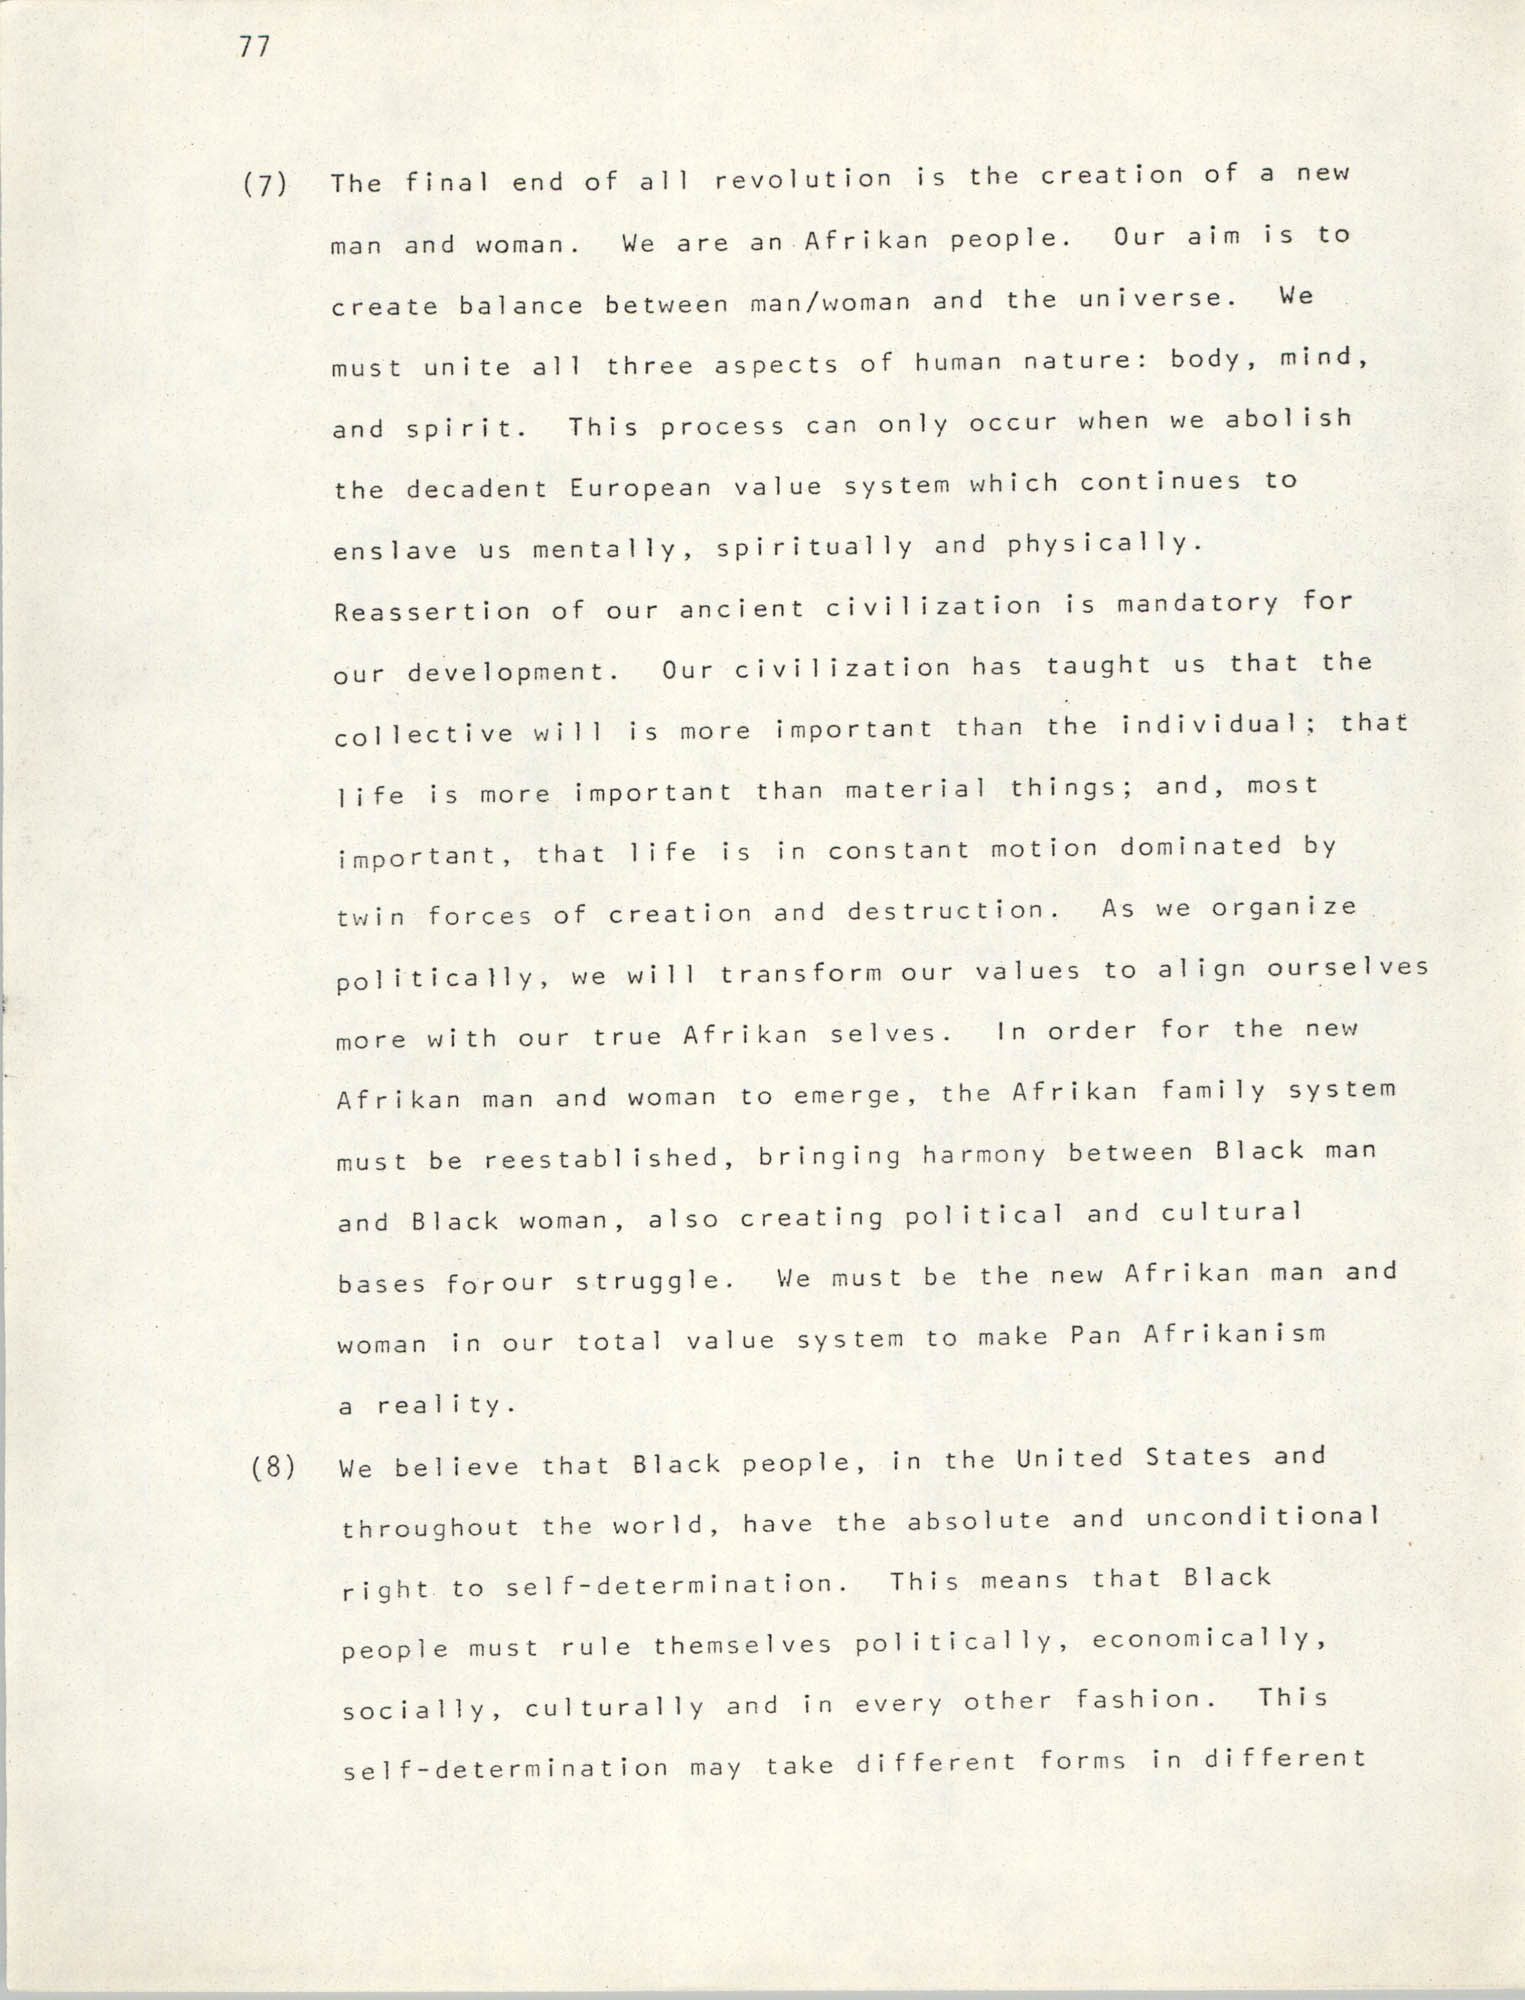 Pan-African Committee of the Black United Front, Page 77